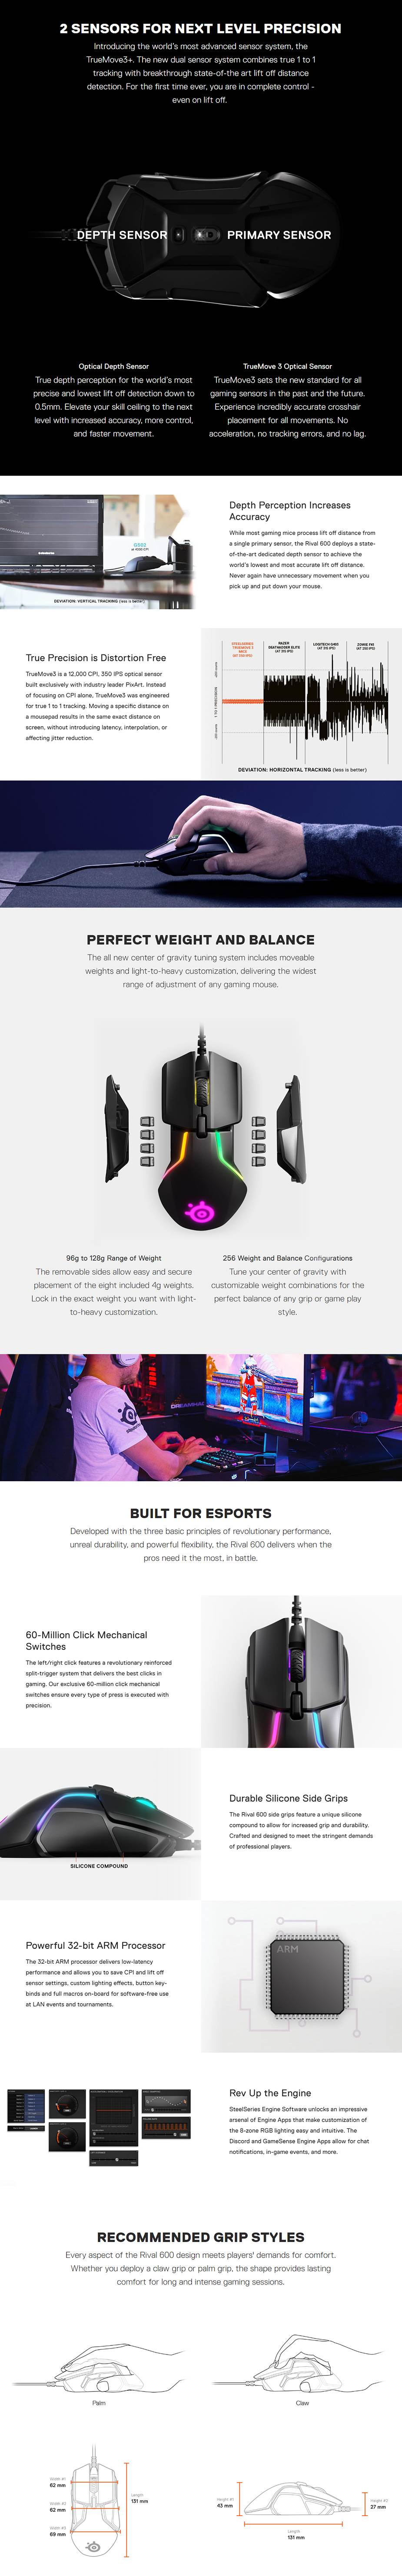 SteelSeries Rival 600 Dual-Optical Gaming Mouse - Desktop Overview 1